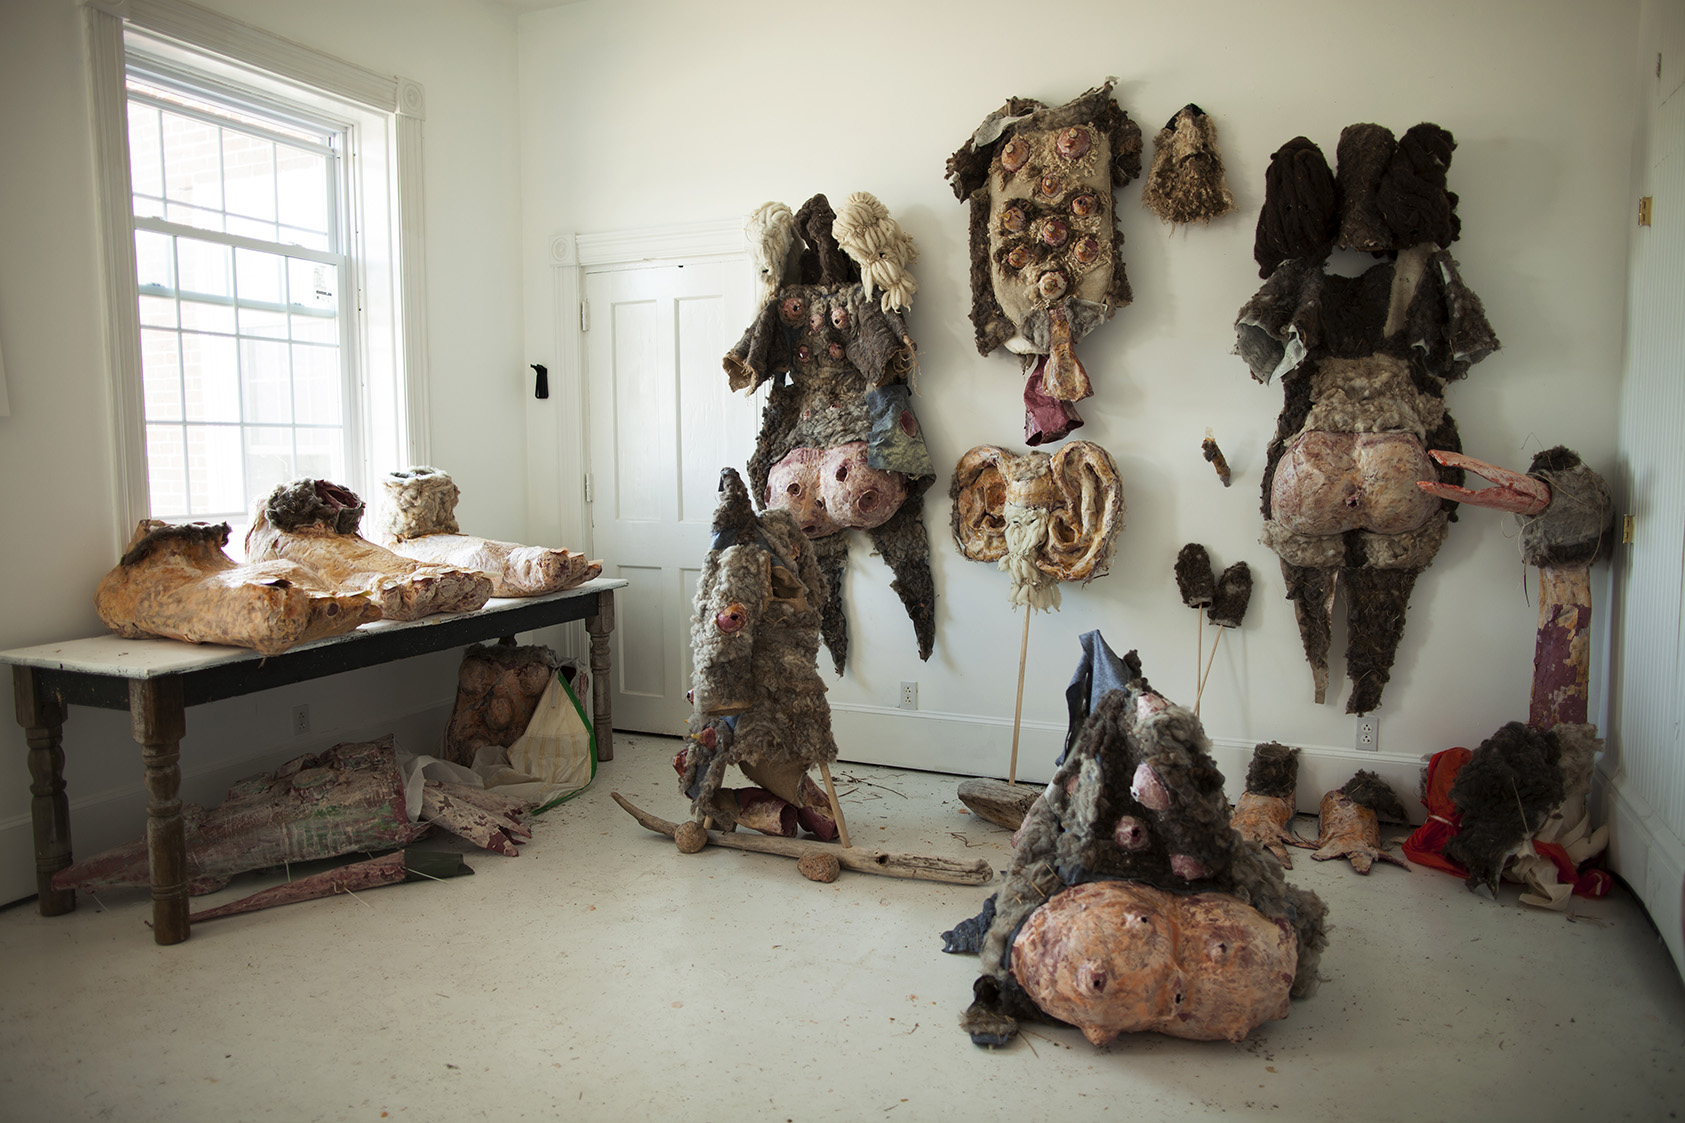 Taxidermy for humans of a dystopian future , 2016, papier-mâche, raw wool, felt, wax, latex, shellac, burlap, wood. Installed at The Lighthouse Works, Fishers Island, NY